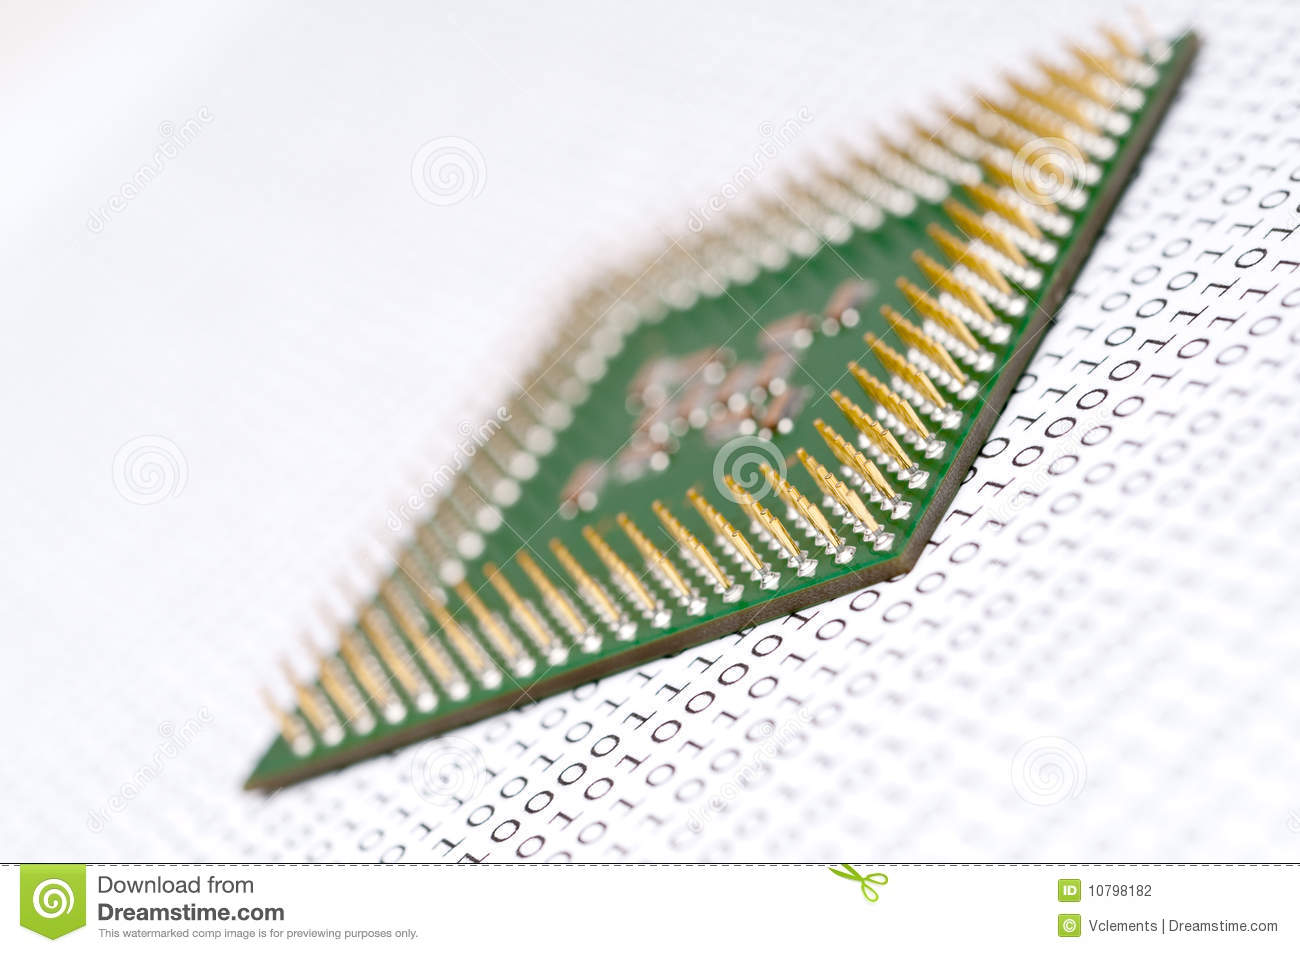 Computer Cpu Chip Binary Code Stock Images 99 Photos Ram Chips With A Circuit Board Memory